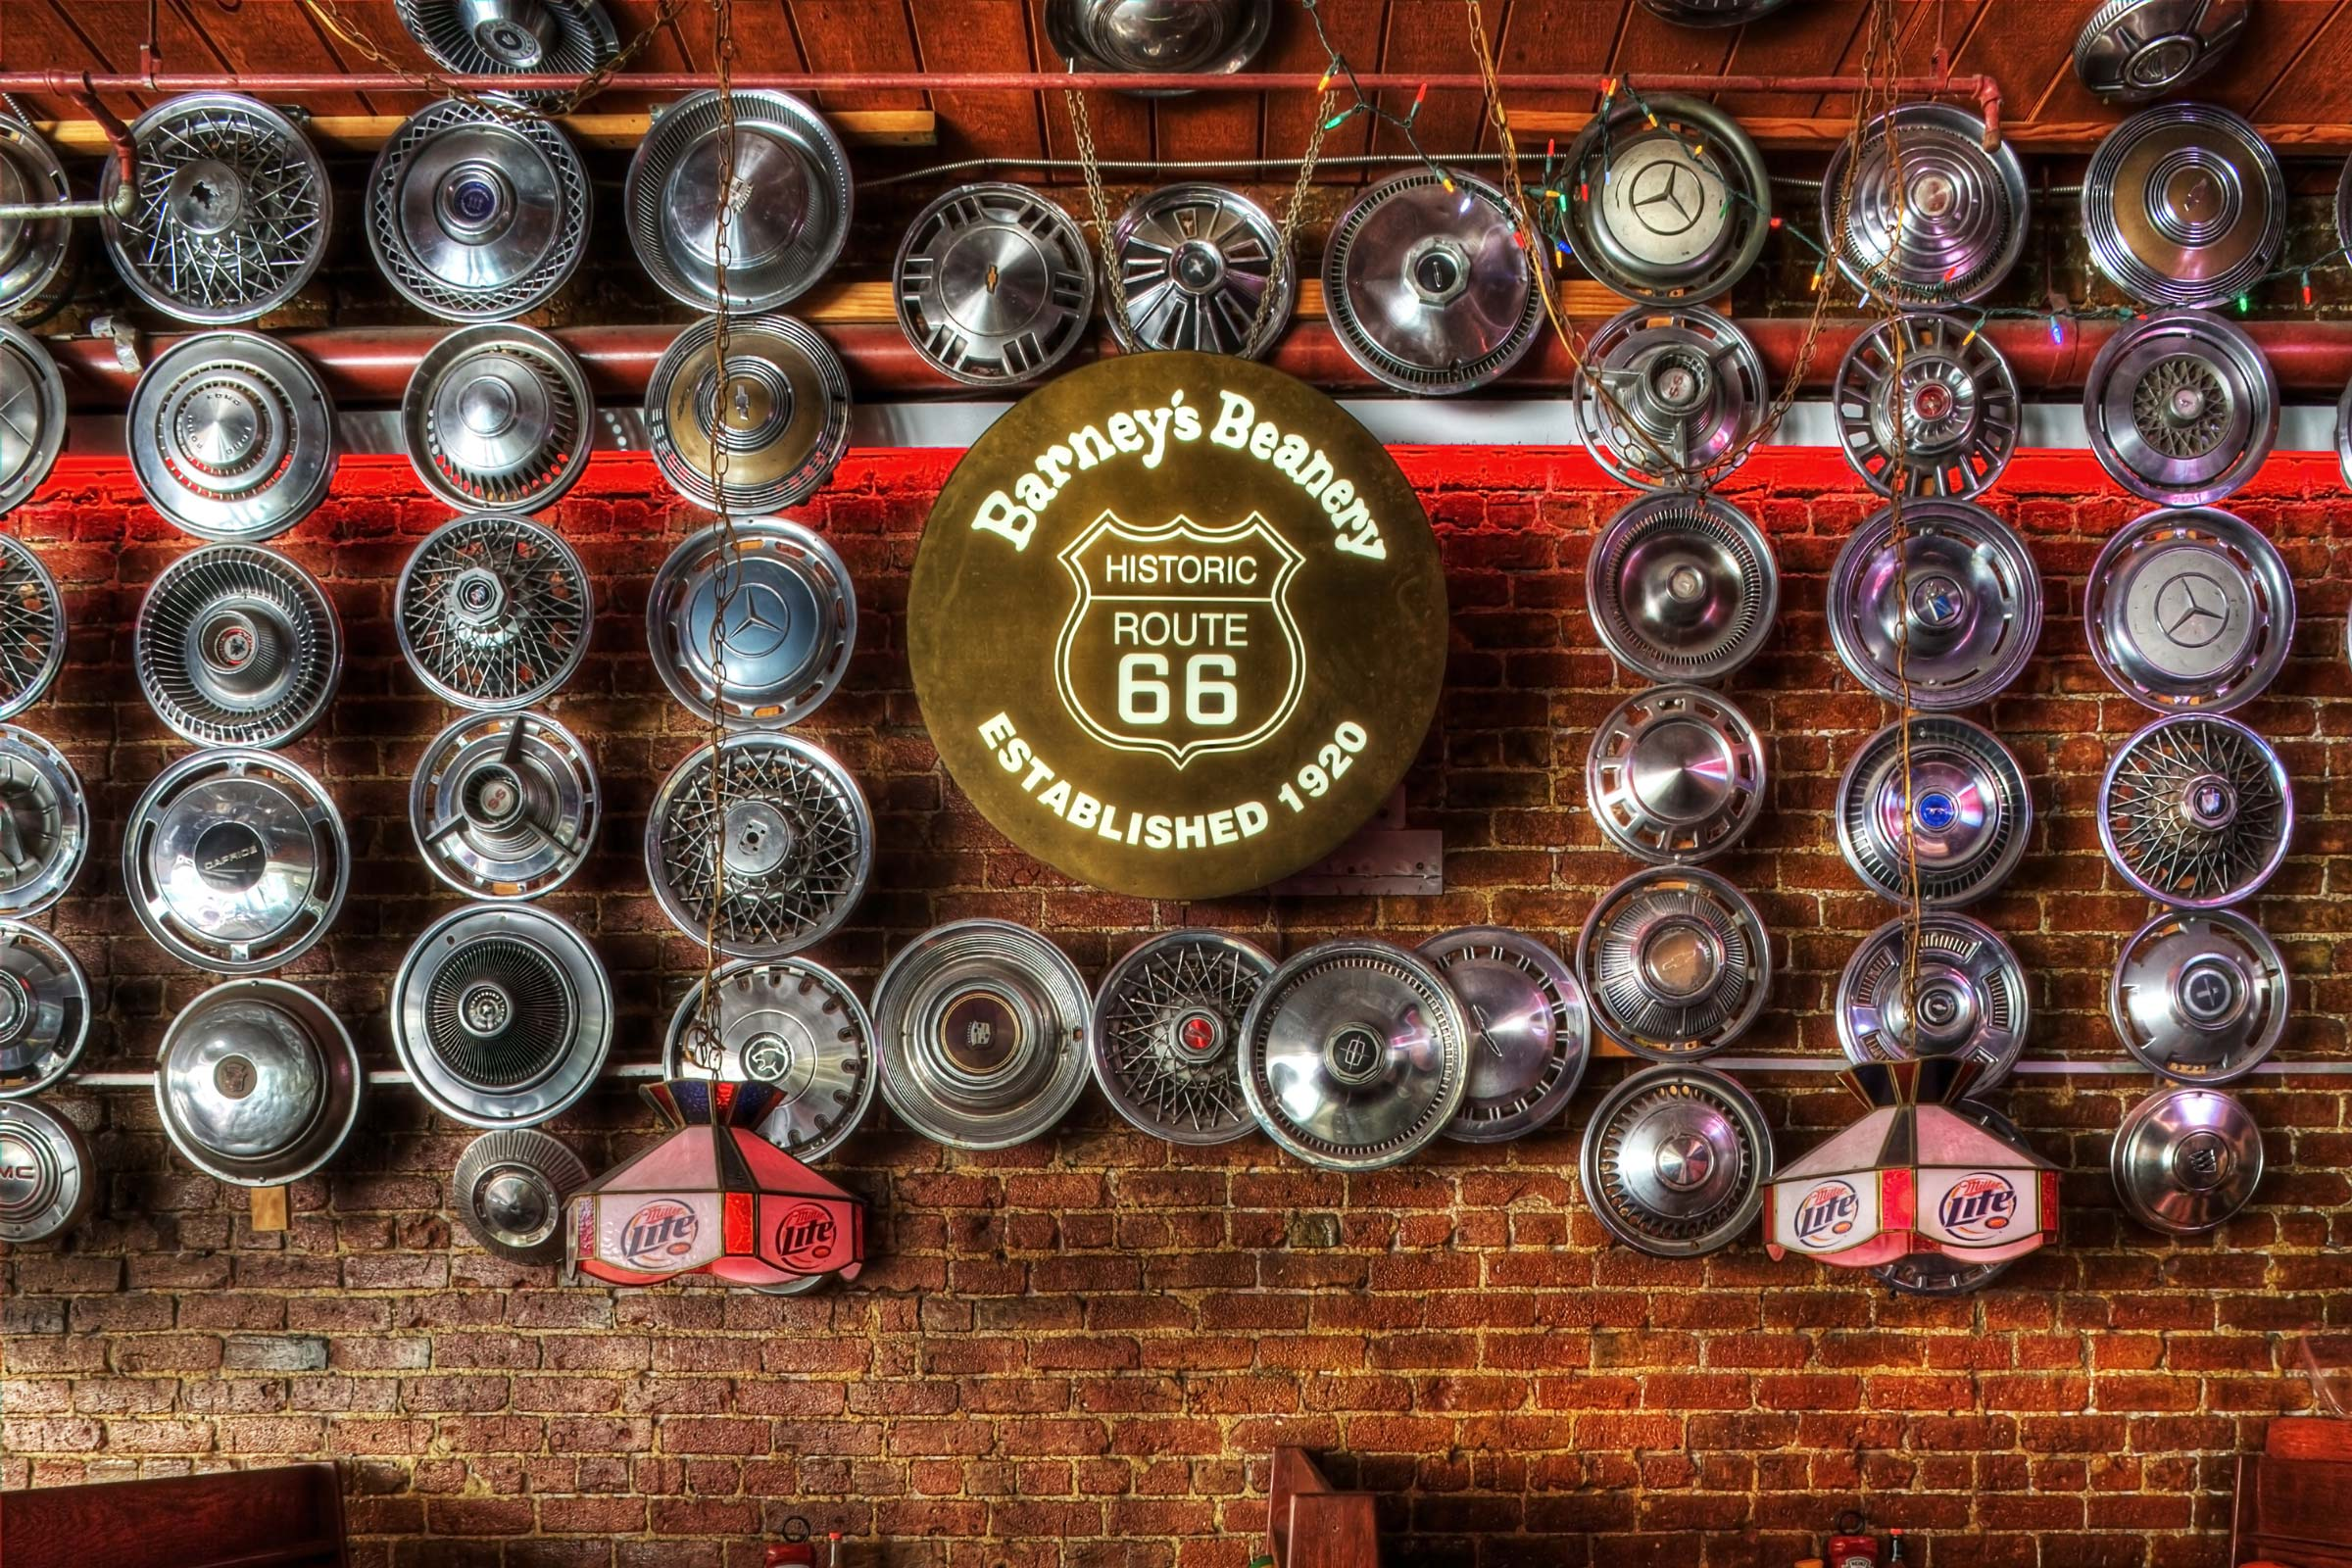 About • Barney's Beanery